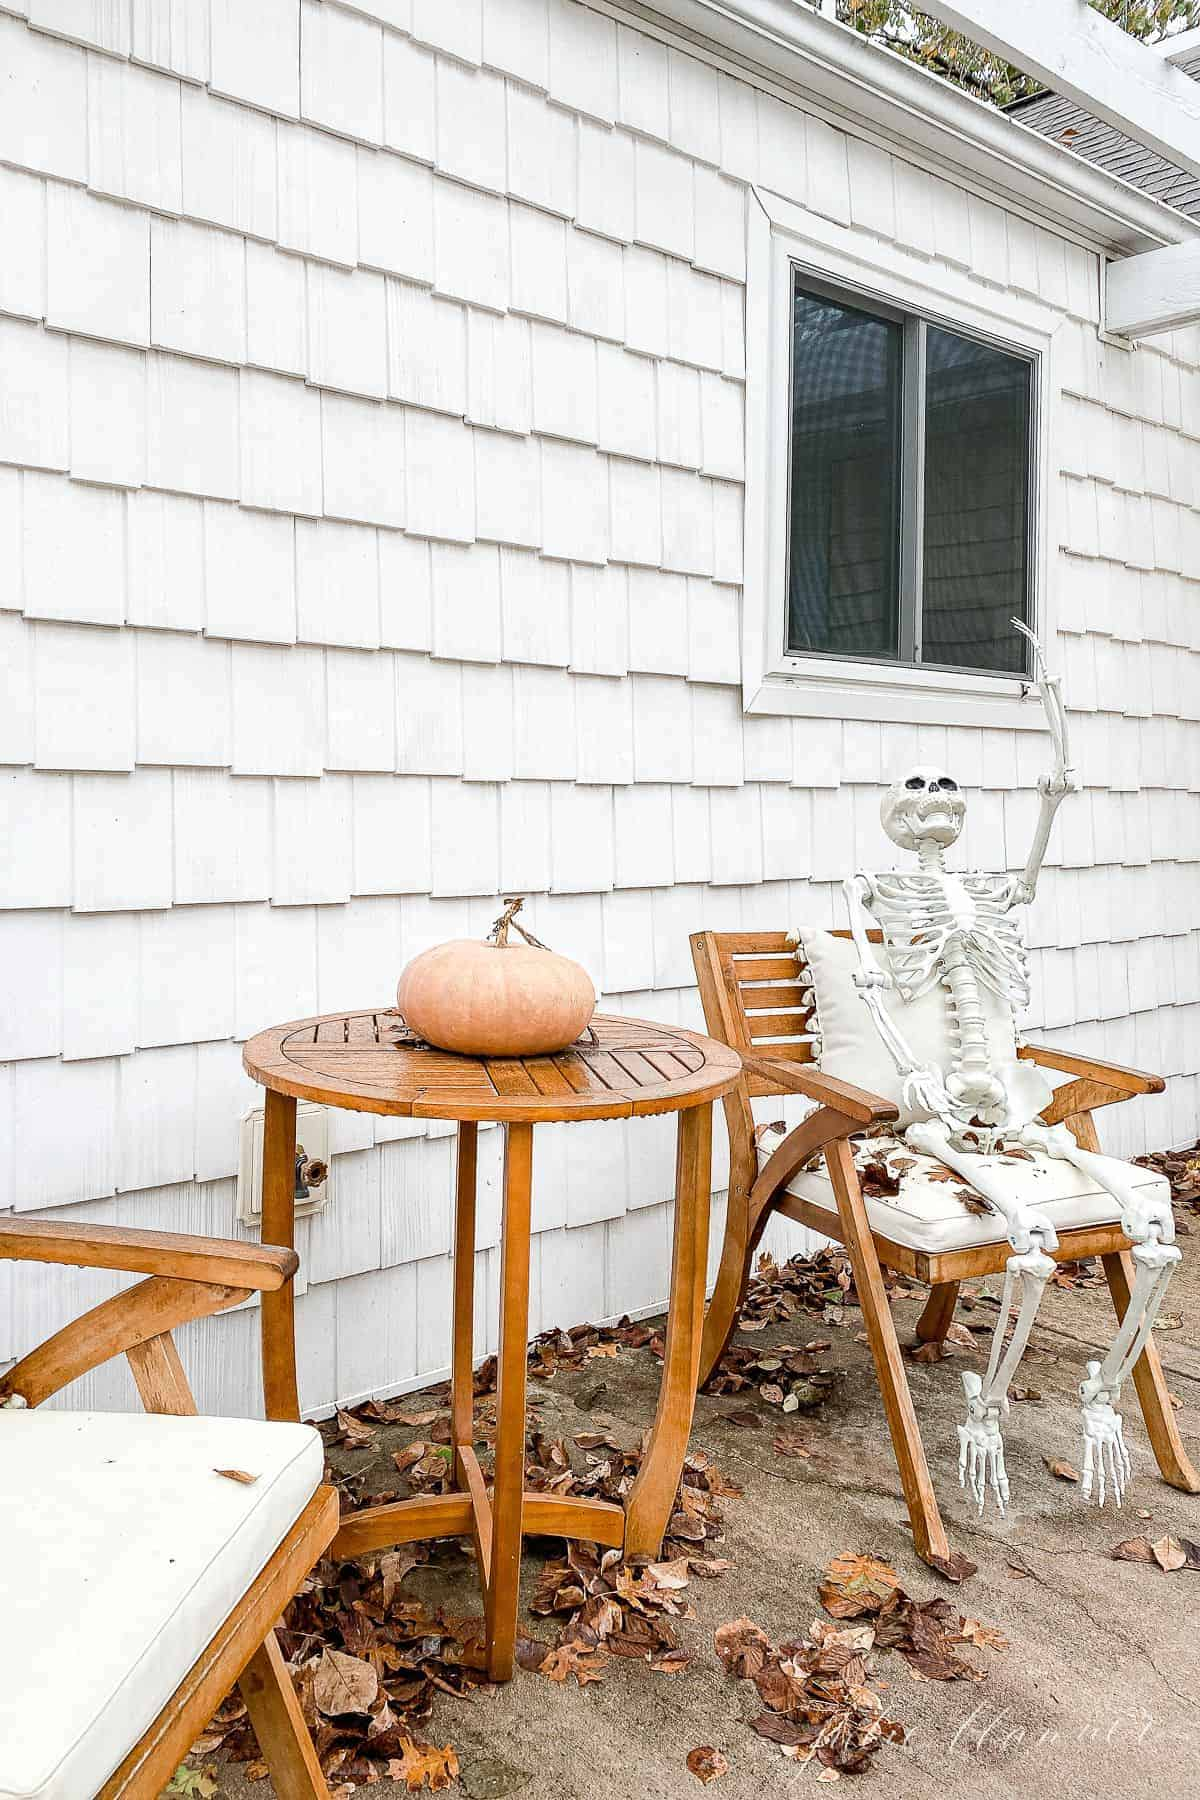 A wooden table set on a front porch with a skeleton waving for Halloween porch decorations.